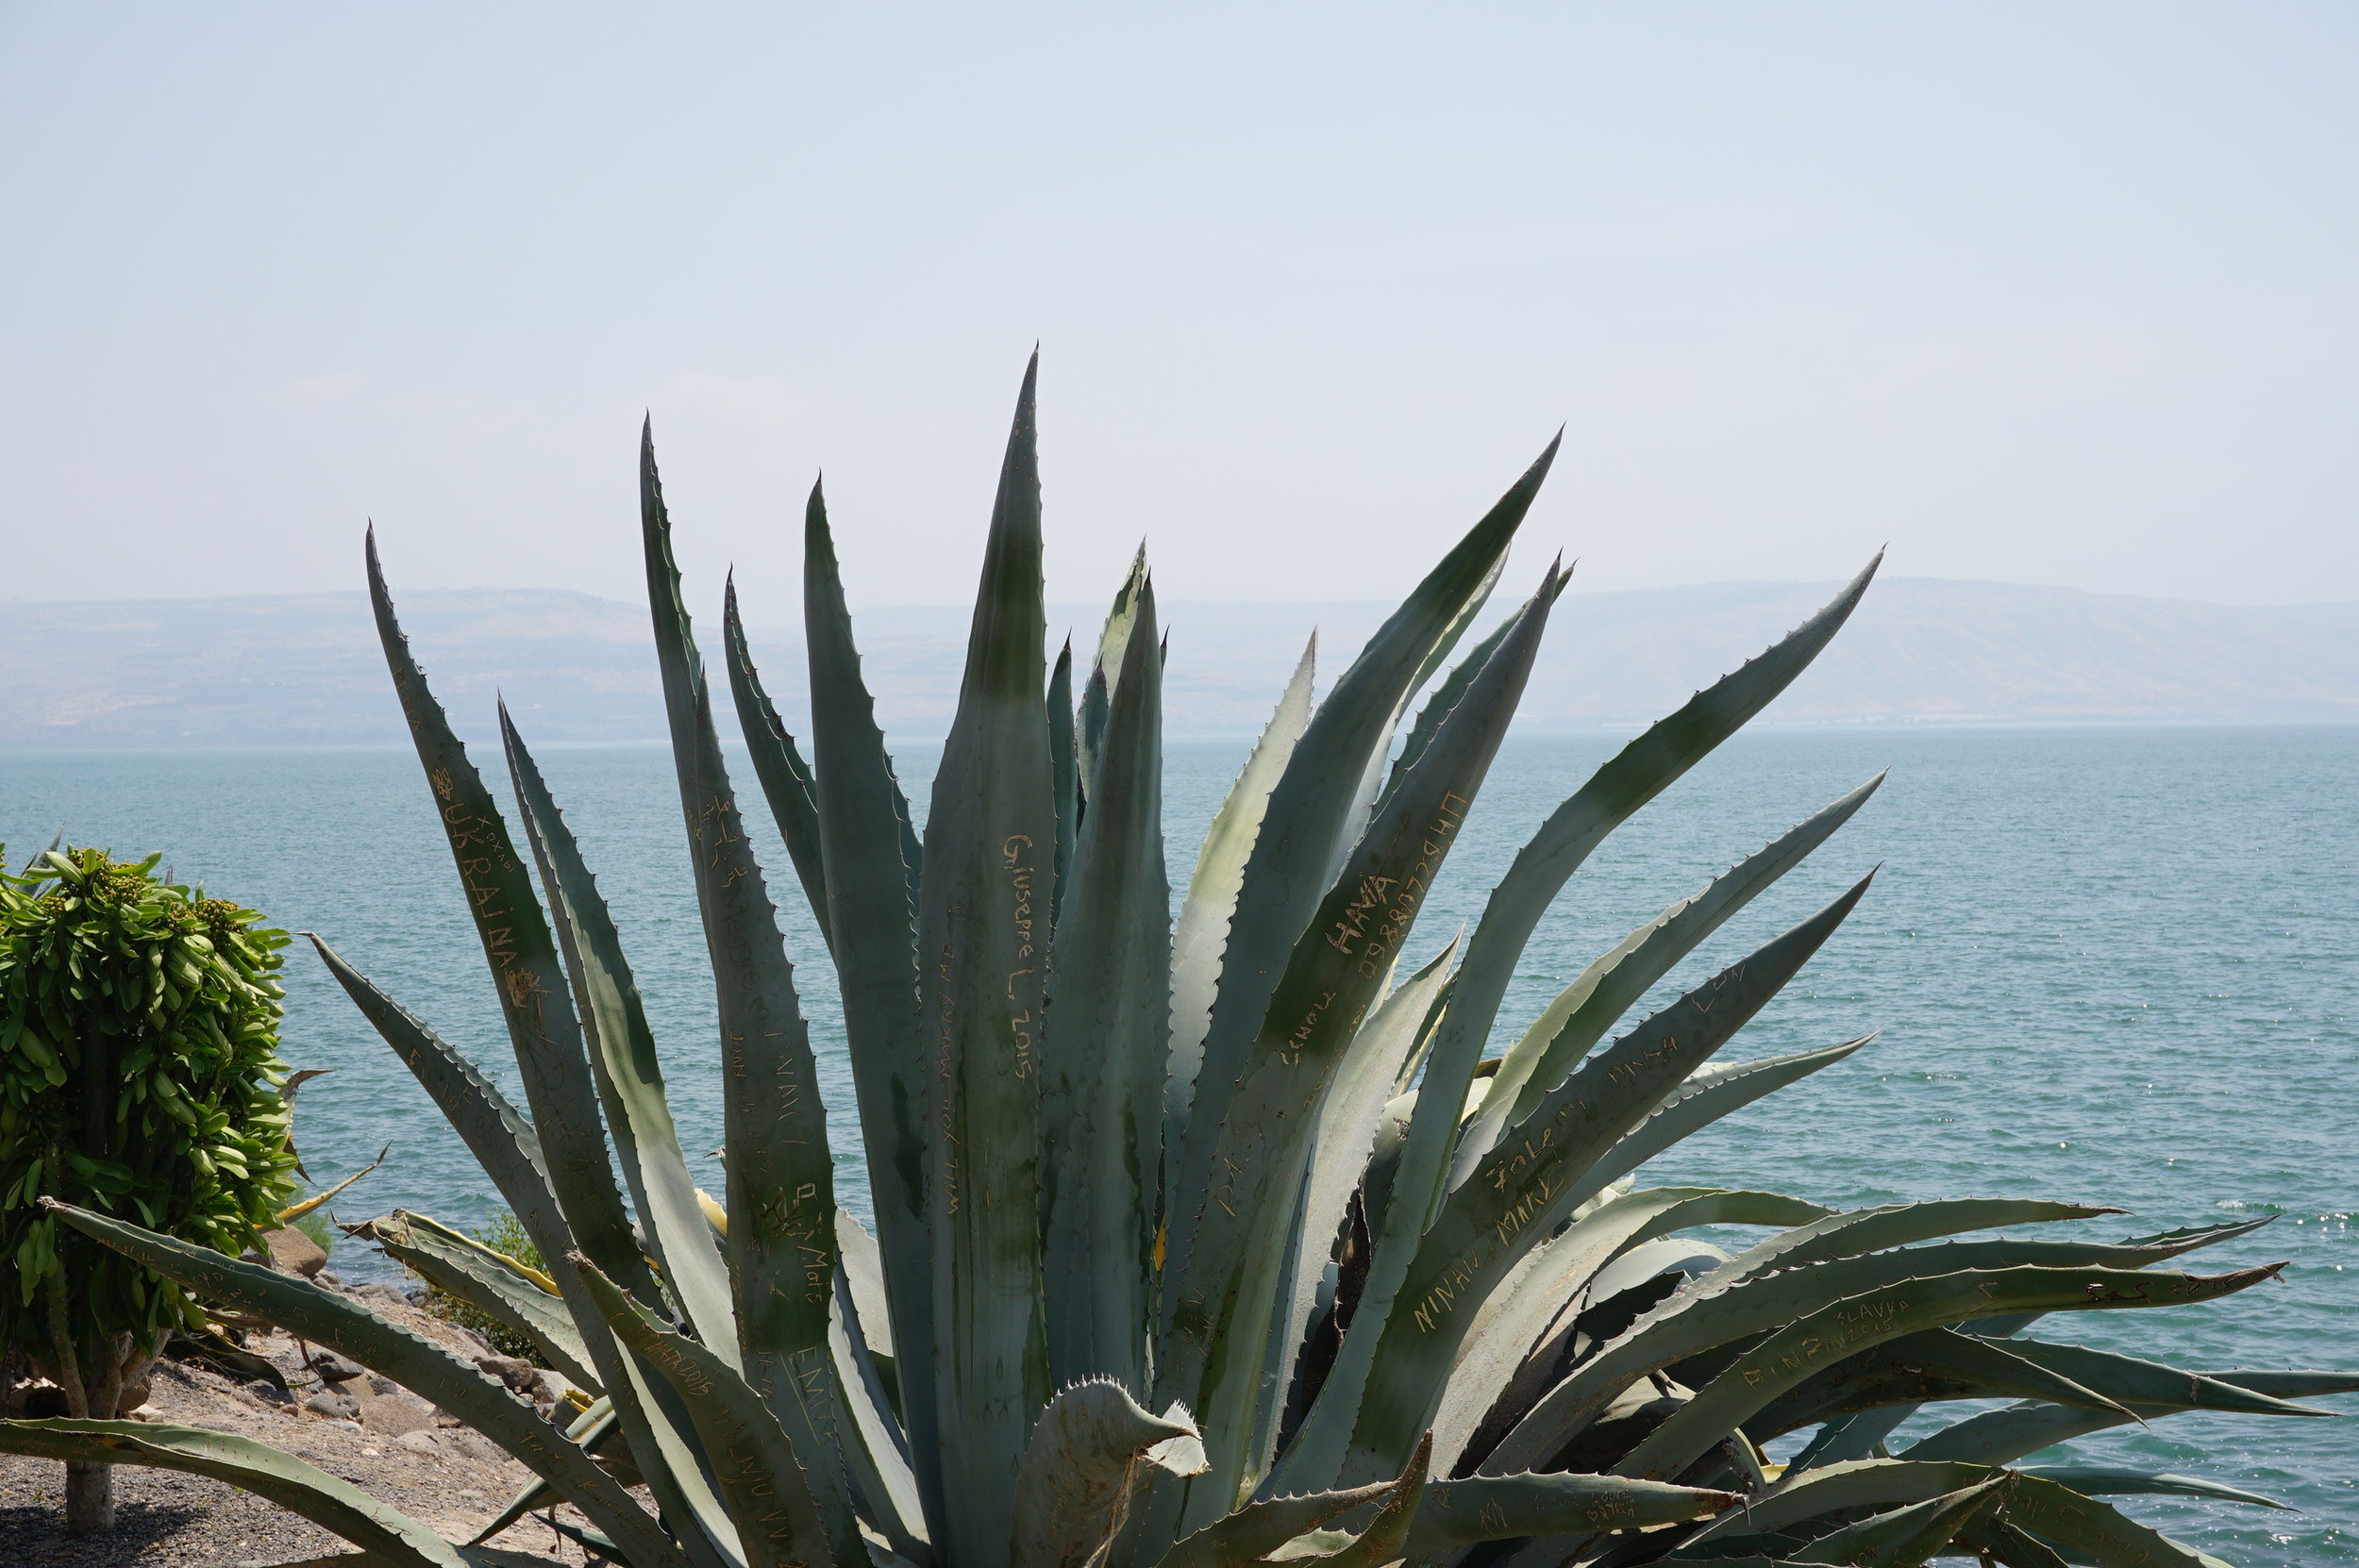 Capernaum-Sea of Galilee Israel 1.JPG